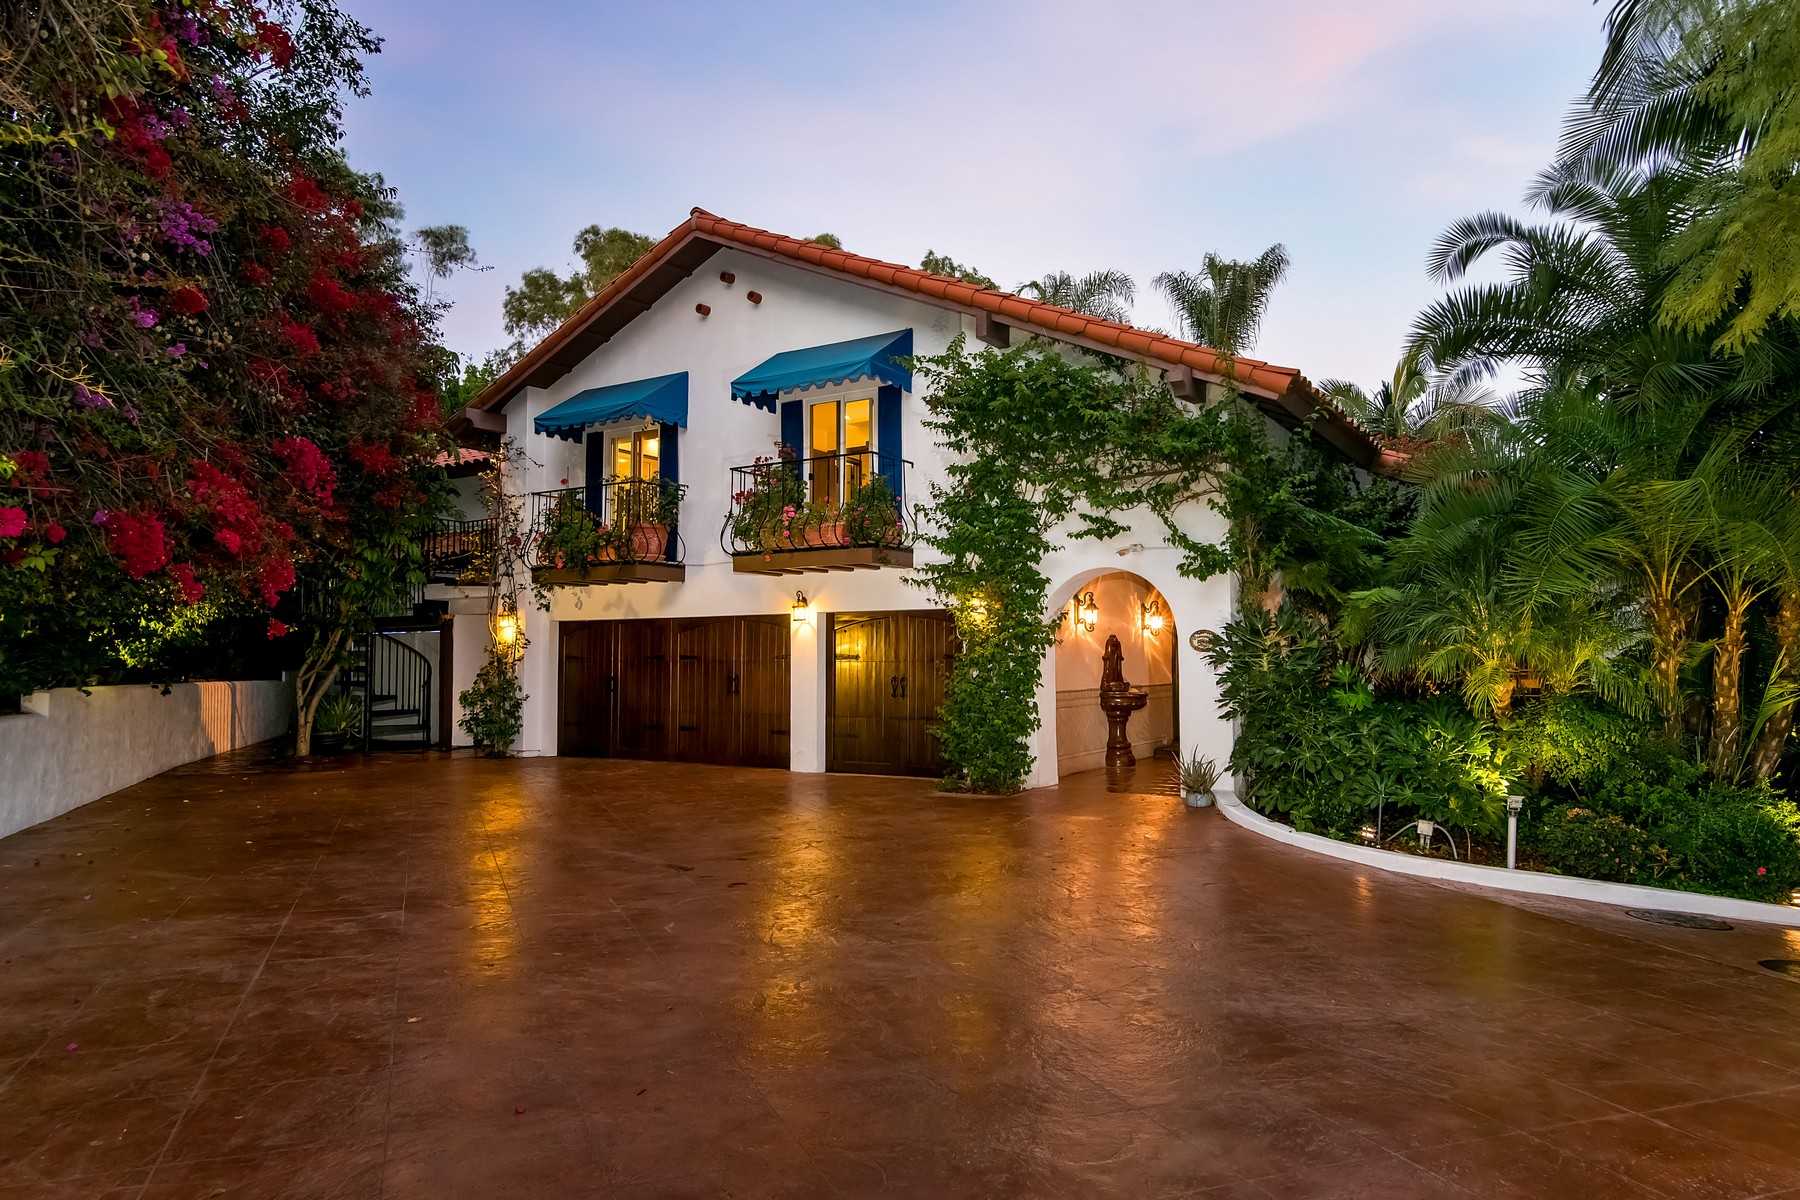 Single Family Home for Sale at 2154 Ranch View Terrace Encinitas, California 92024 United States